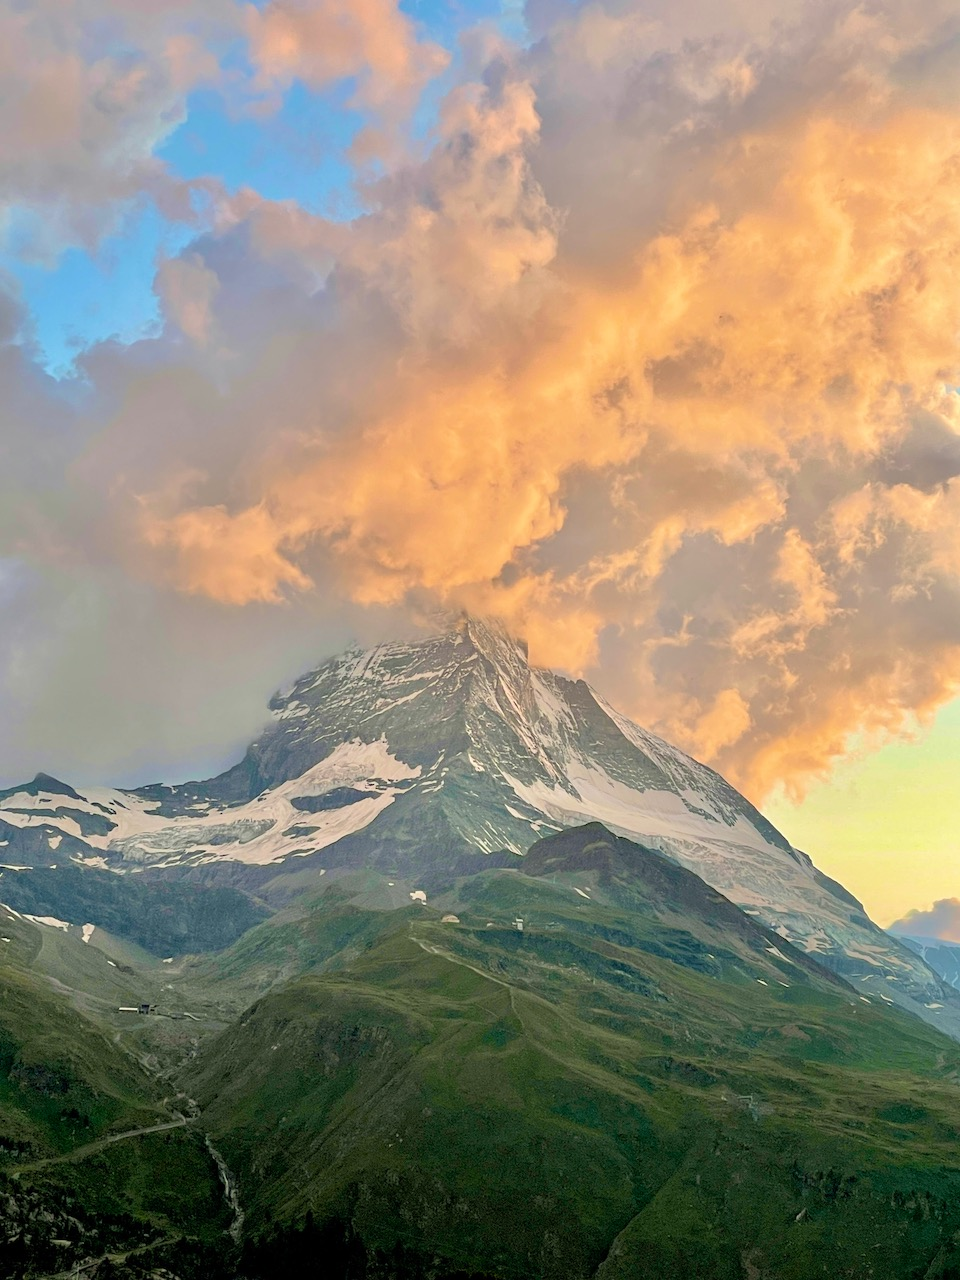 July 2021 Sunset from the Riffelalp Resort